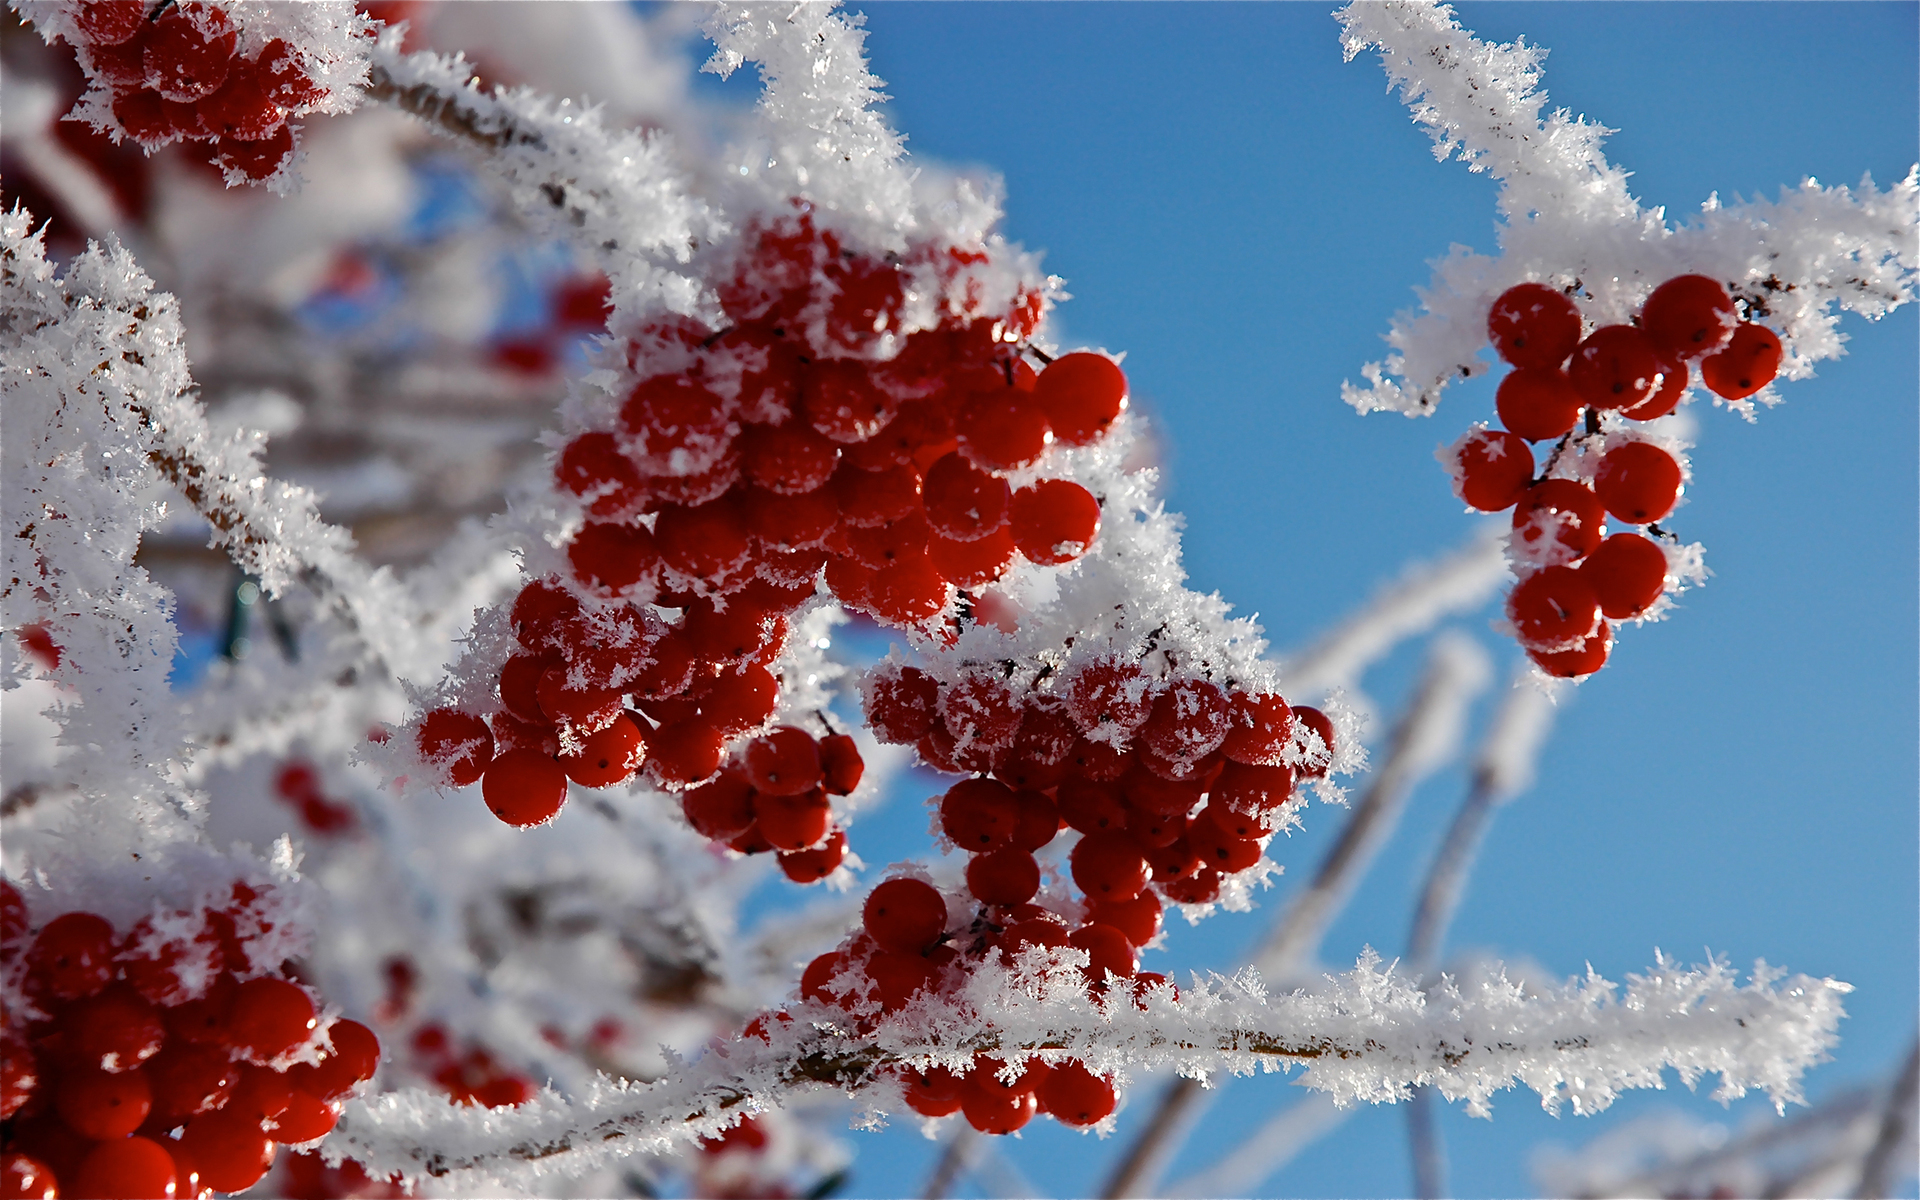 25593 download wallpaper Plants, Winter, Trees, Snow, Berries screensavers and pictures for free